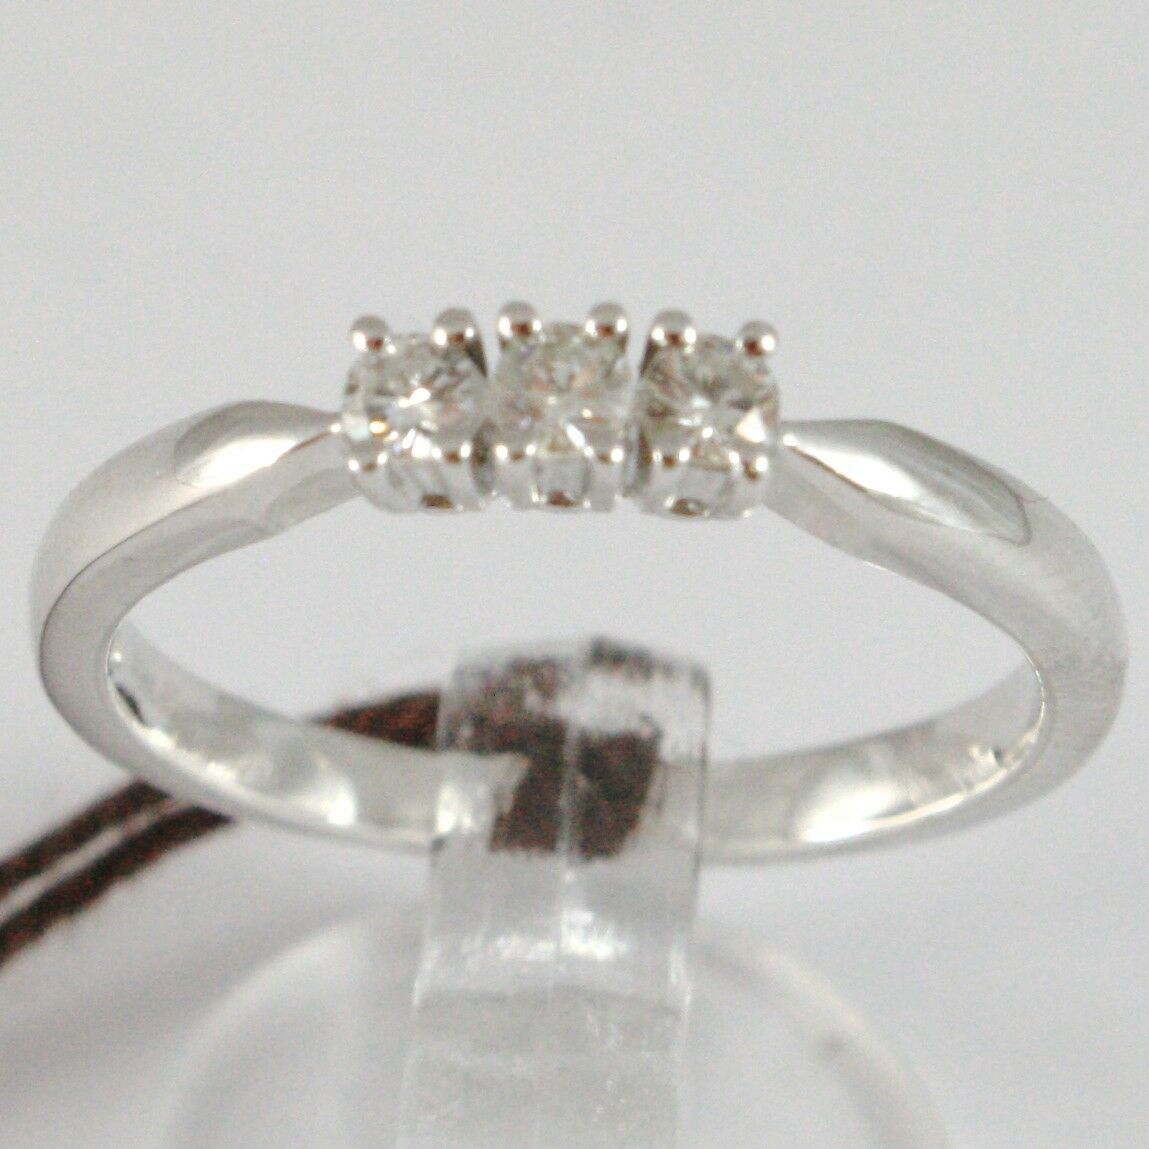 White Gold Ring 750 18K, Trilogy 3 Diamonds Carat Total 0.12, Shank Square